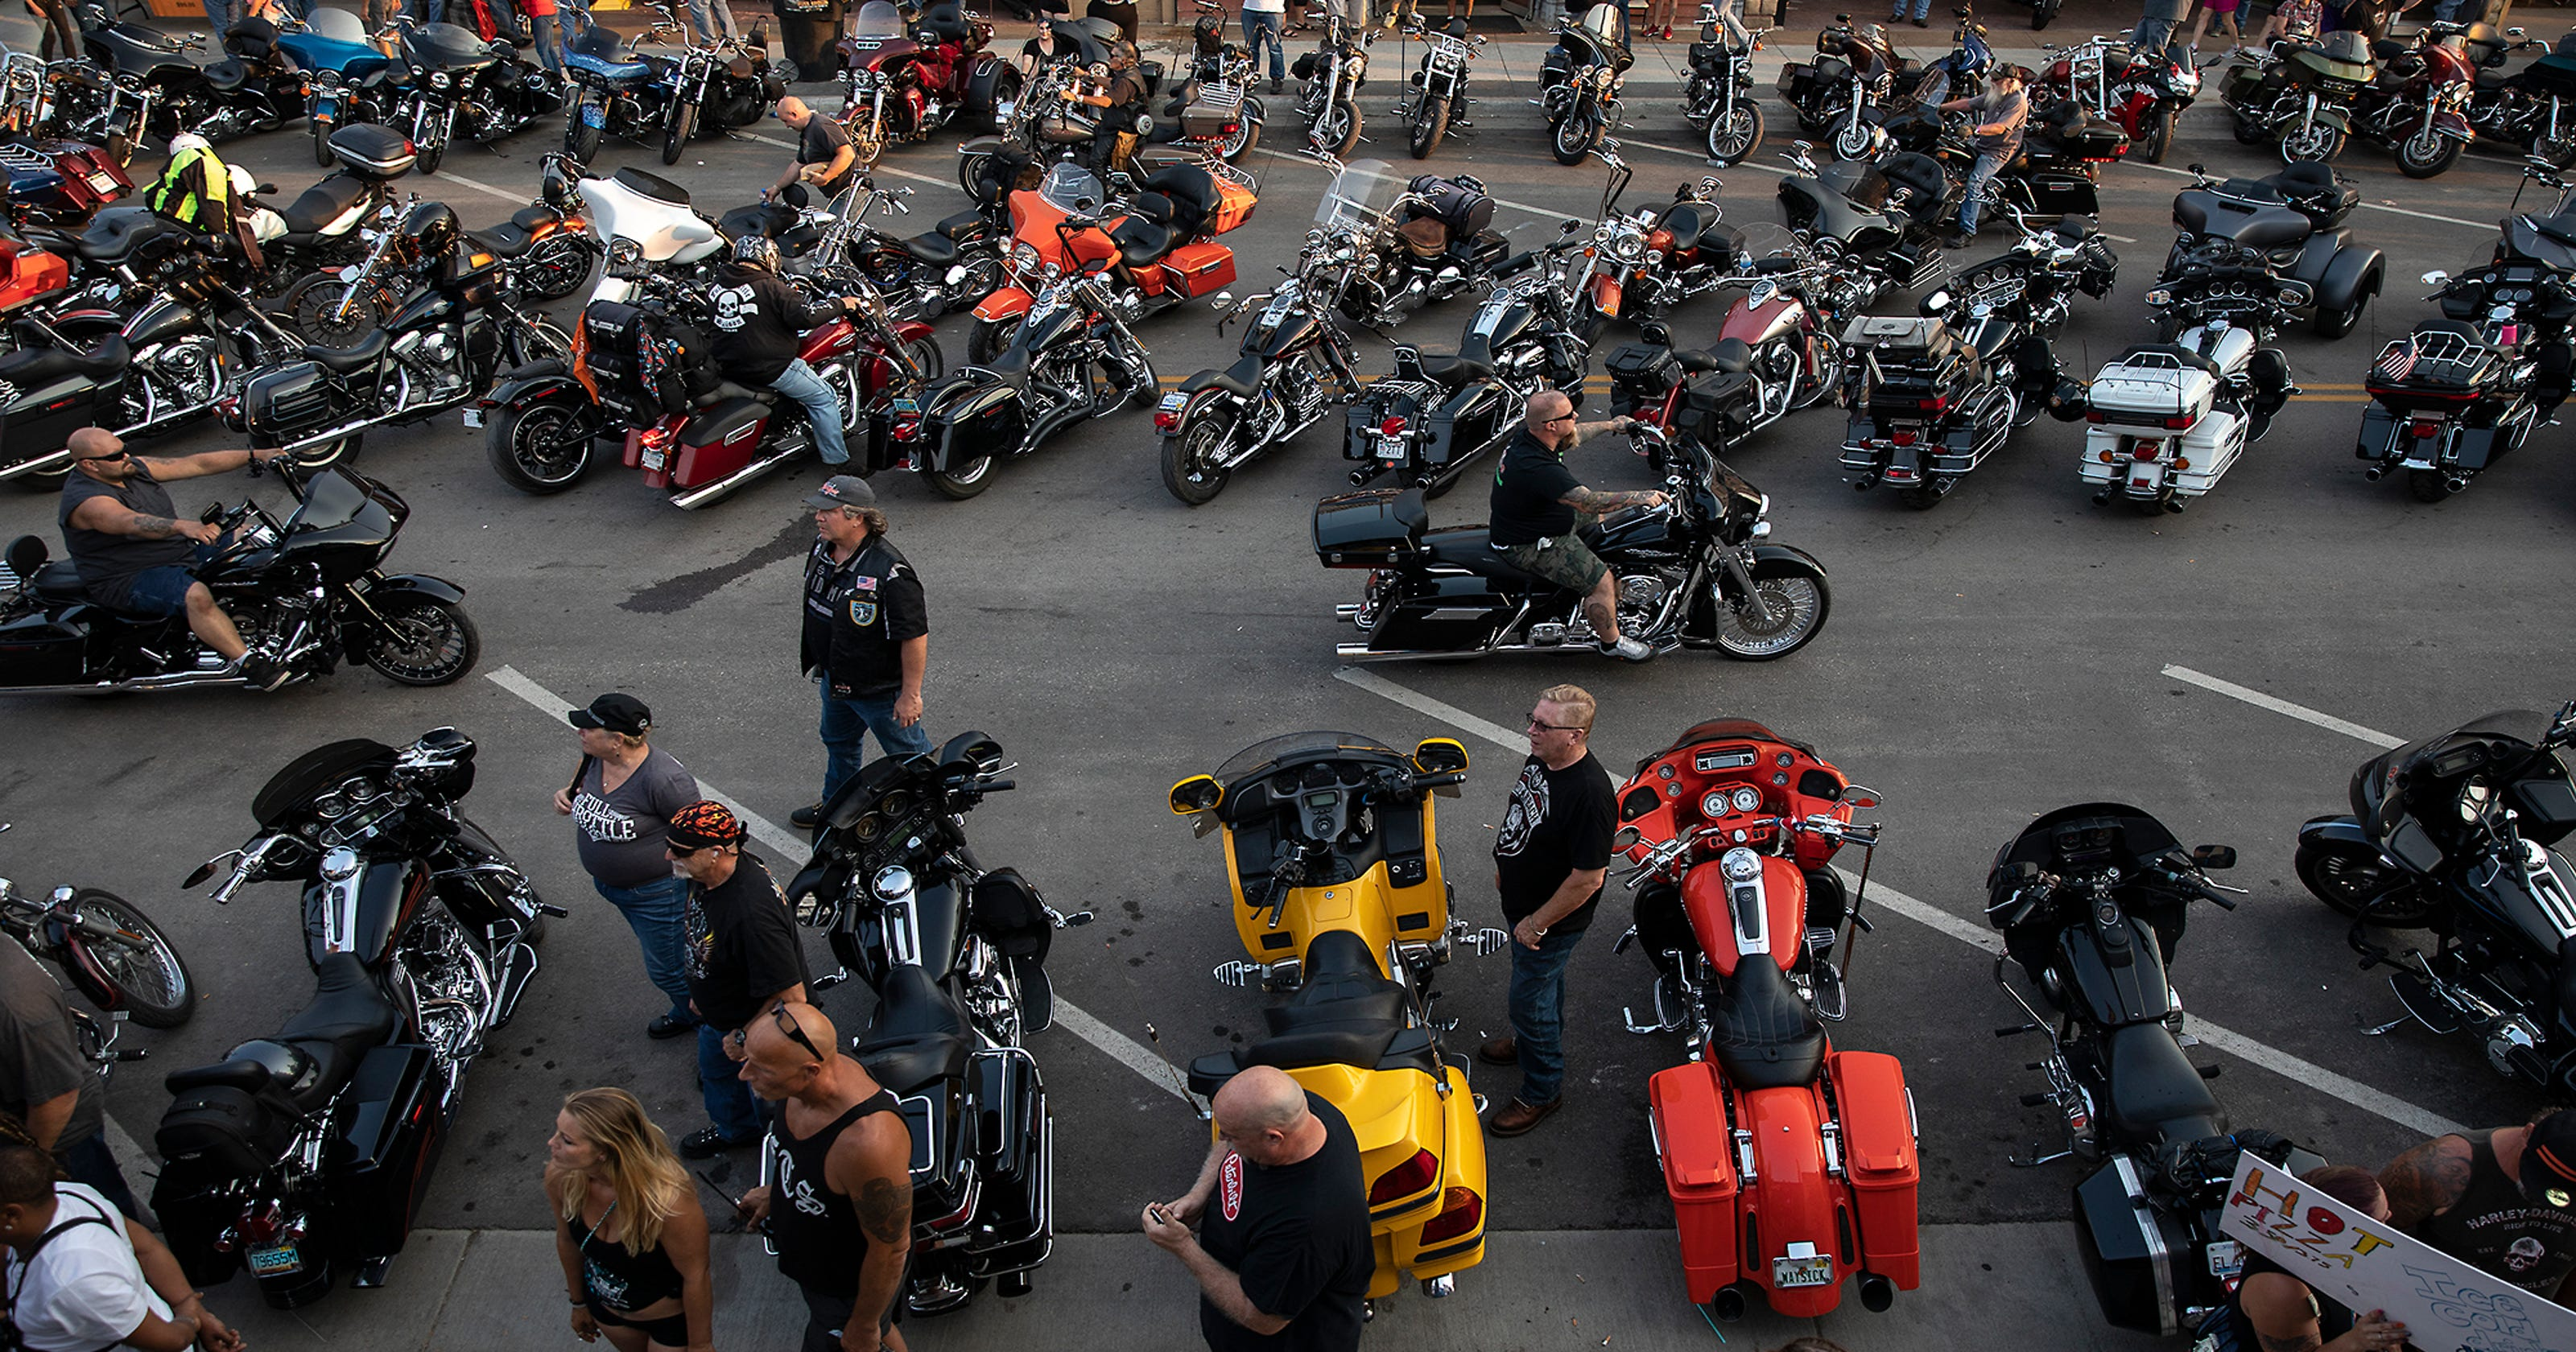 Sturgis Motorcycle Rally 2018: Fatal crash brings total to three